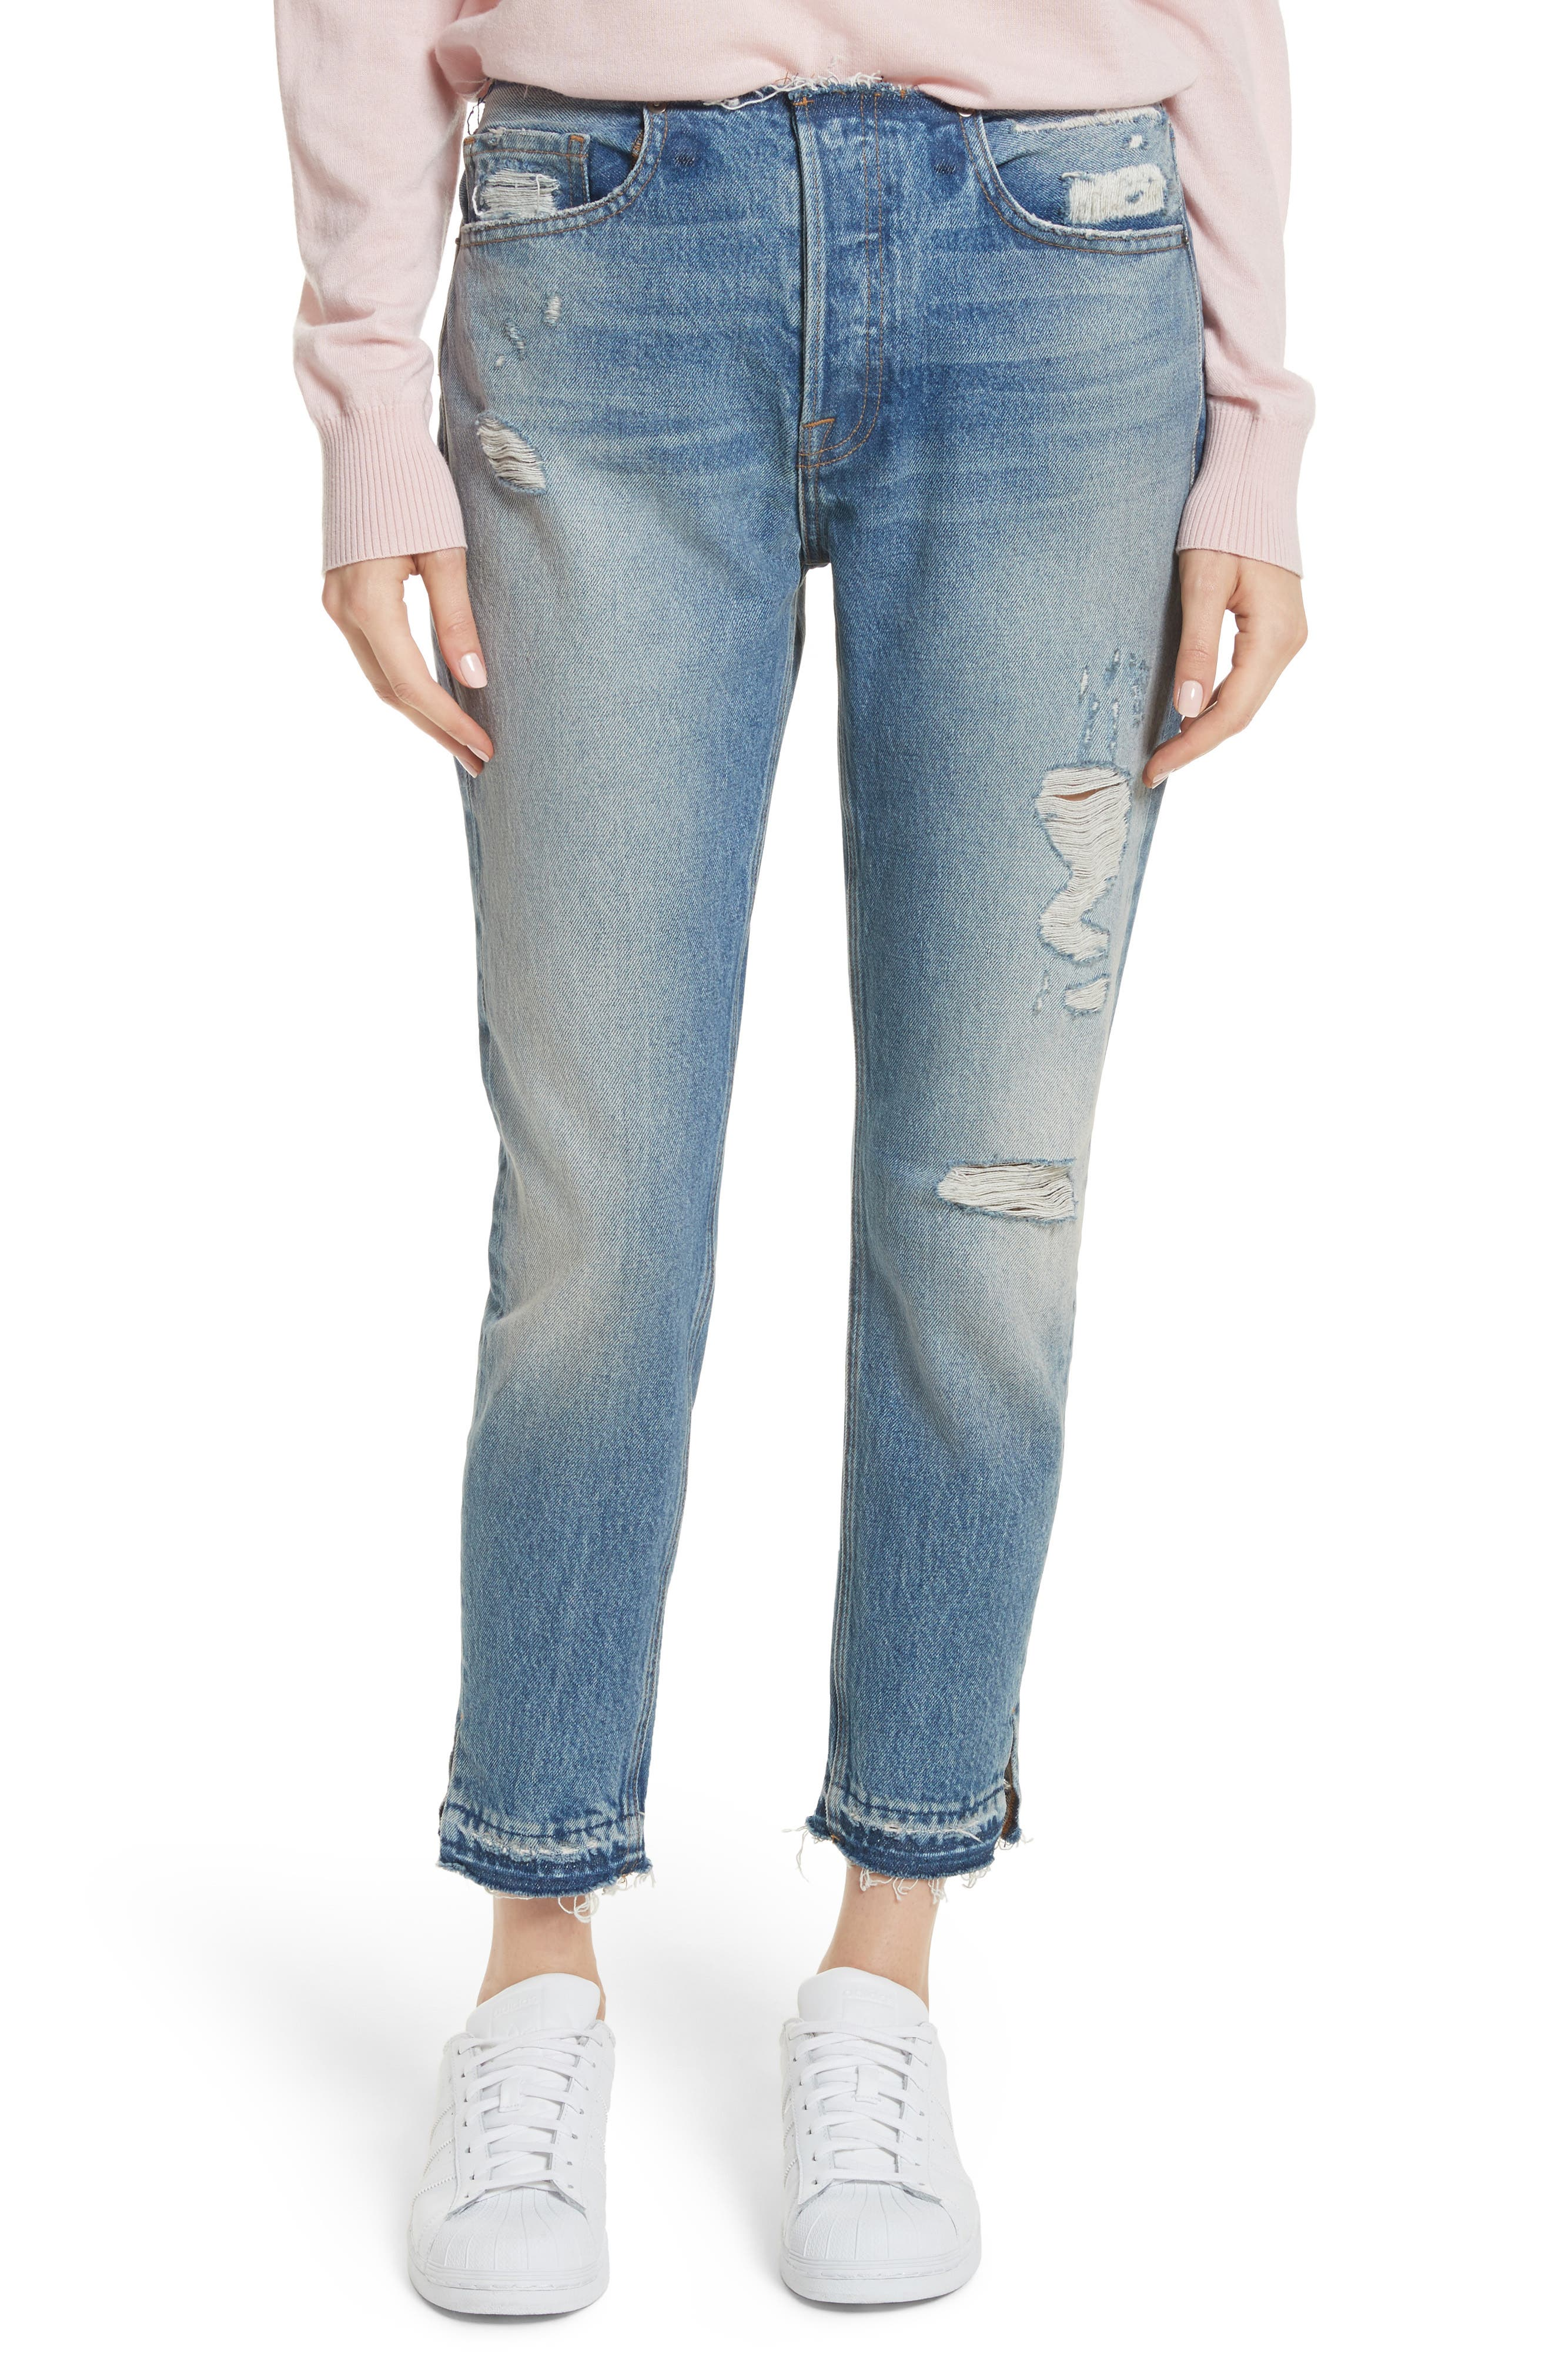 Alternate Image 1 Selected - FRAME Re-Release Le Original Raw Edge High Waist Jeans (Horne)